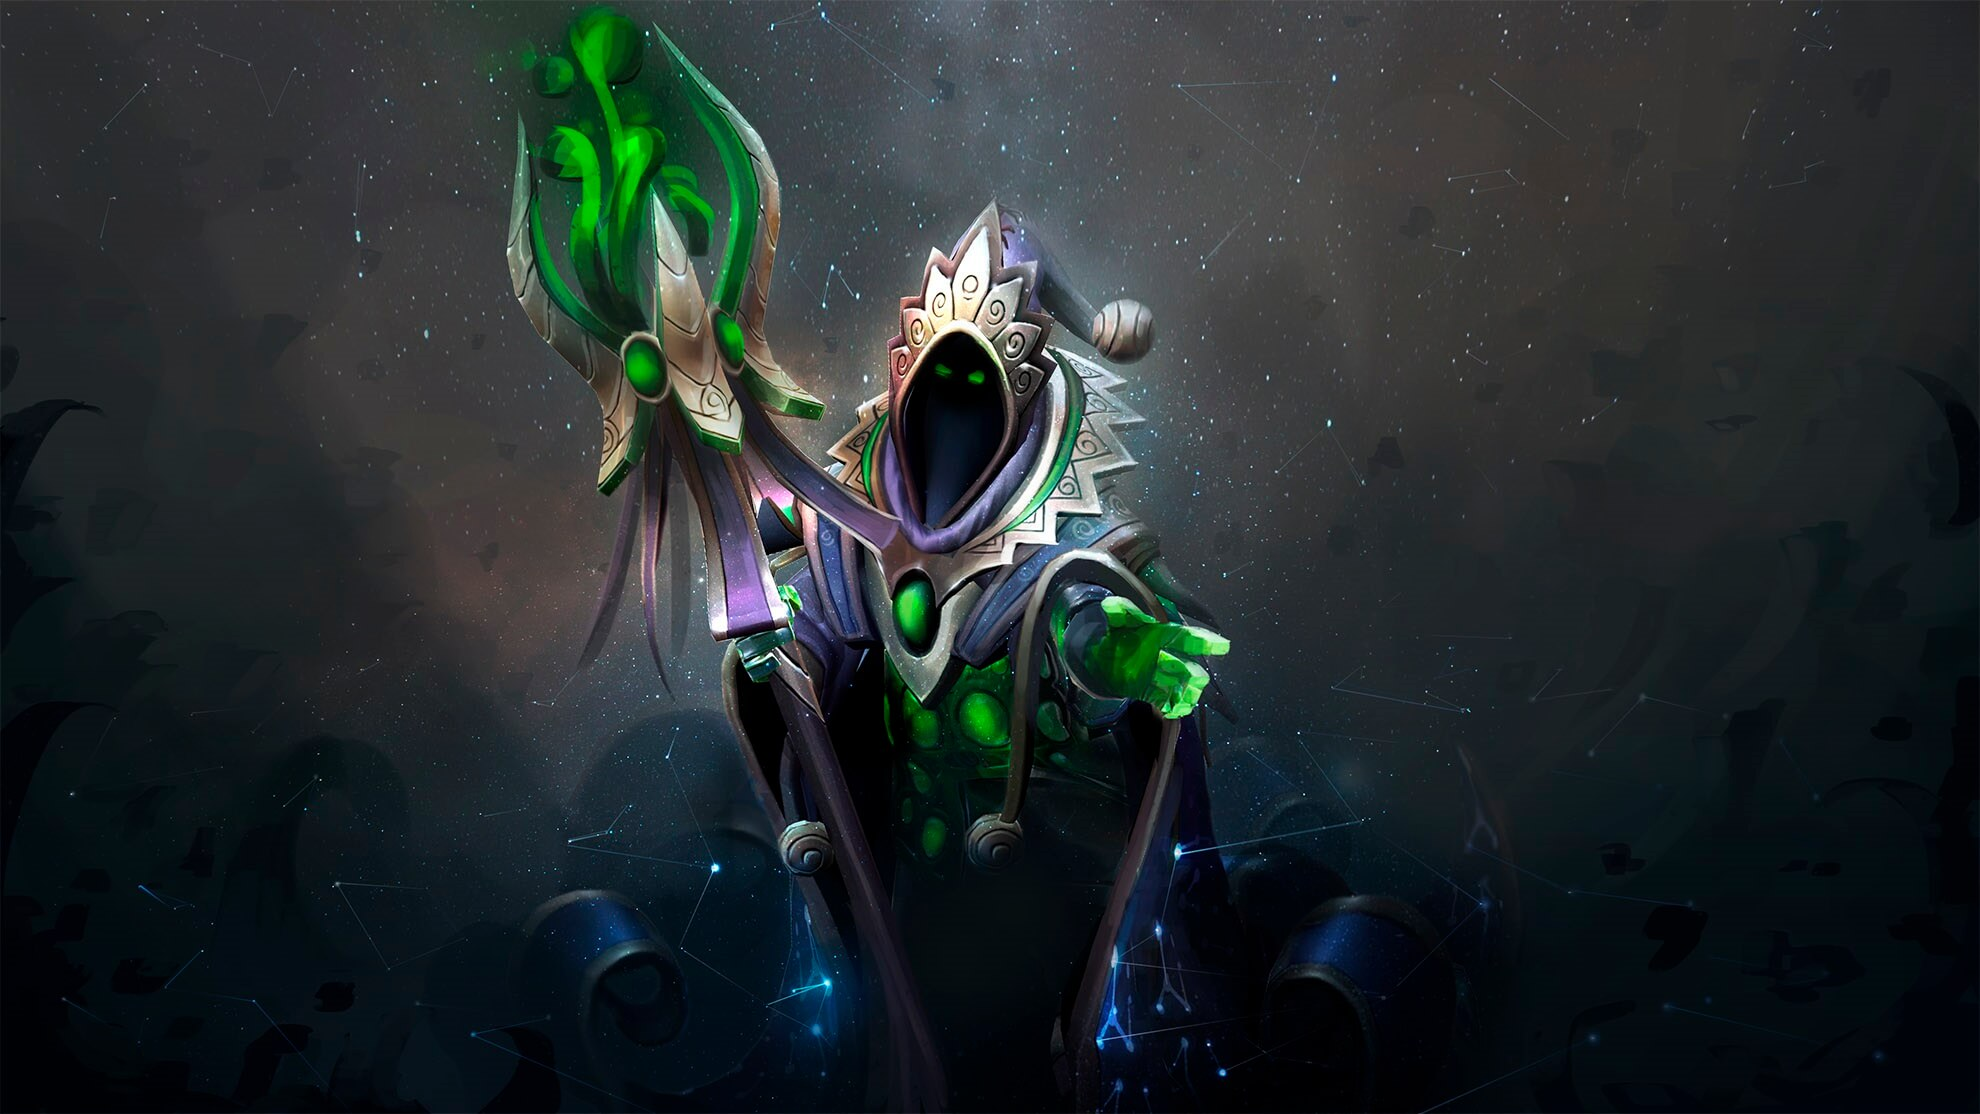 Stargazer's Curiosity loading screen for Rubick - Valve